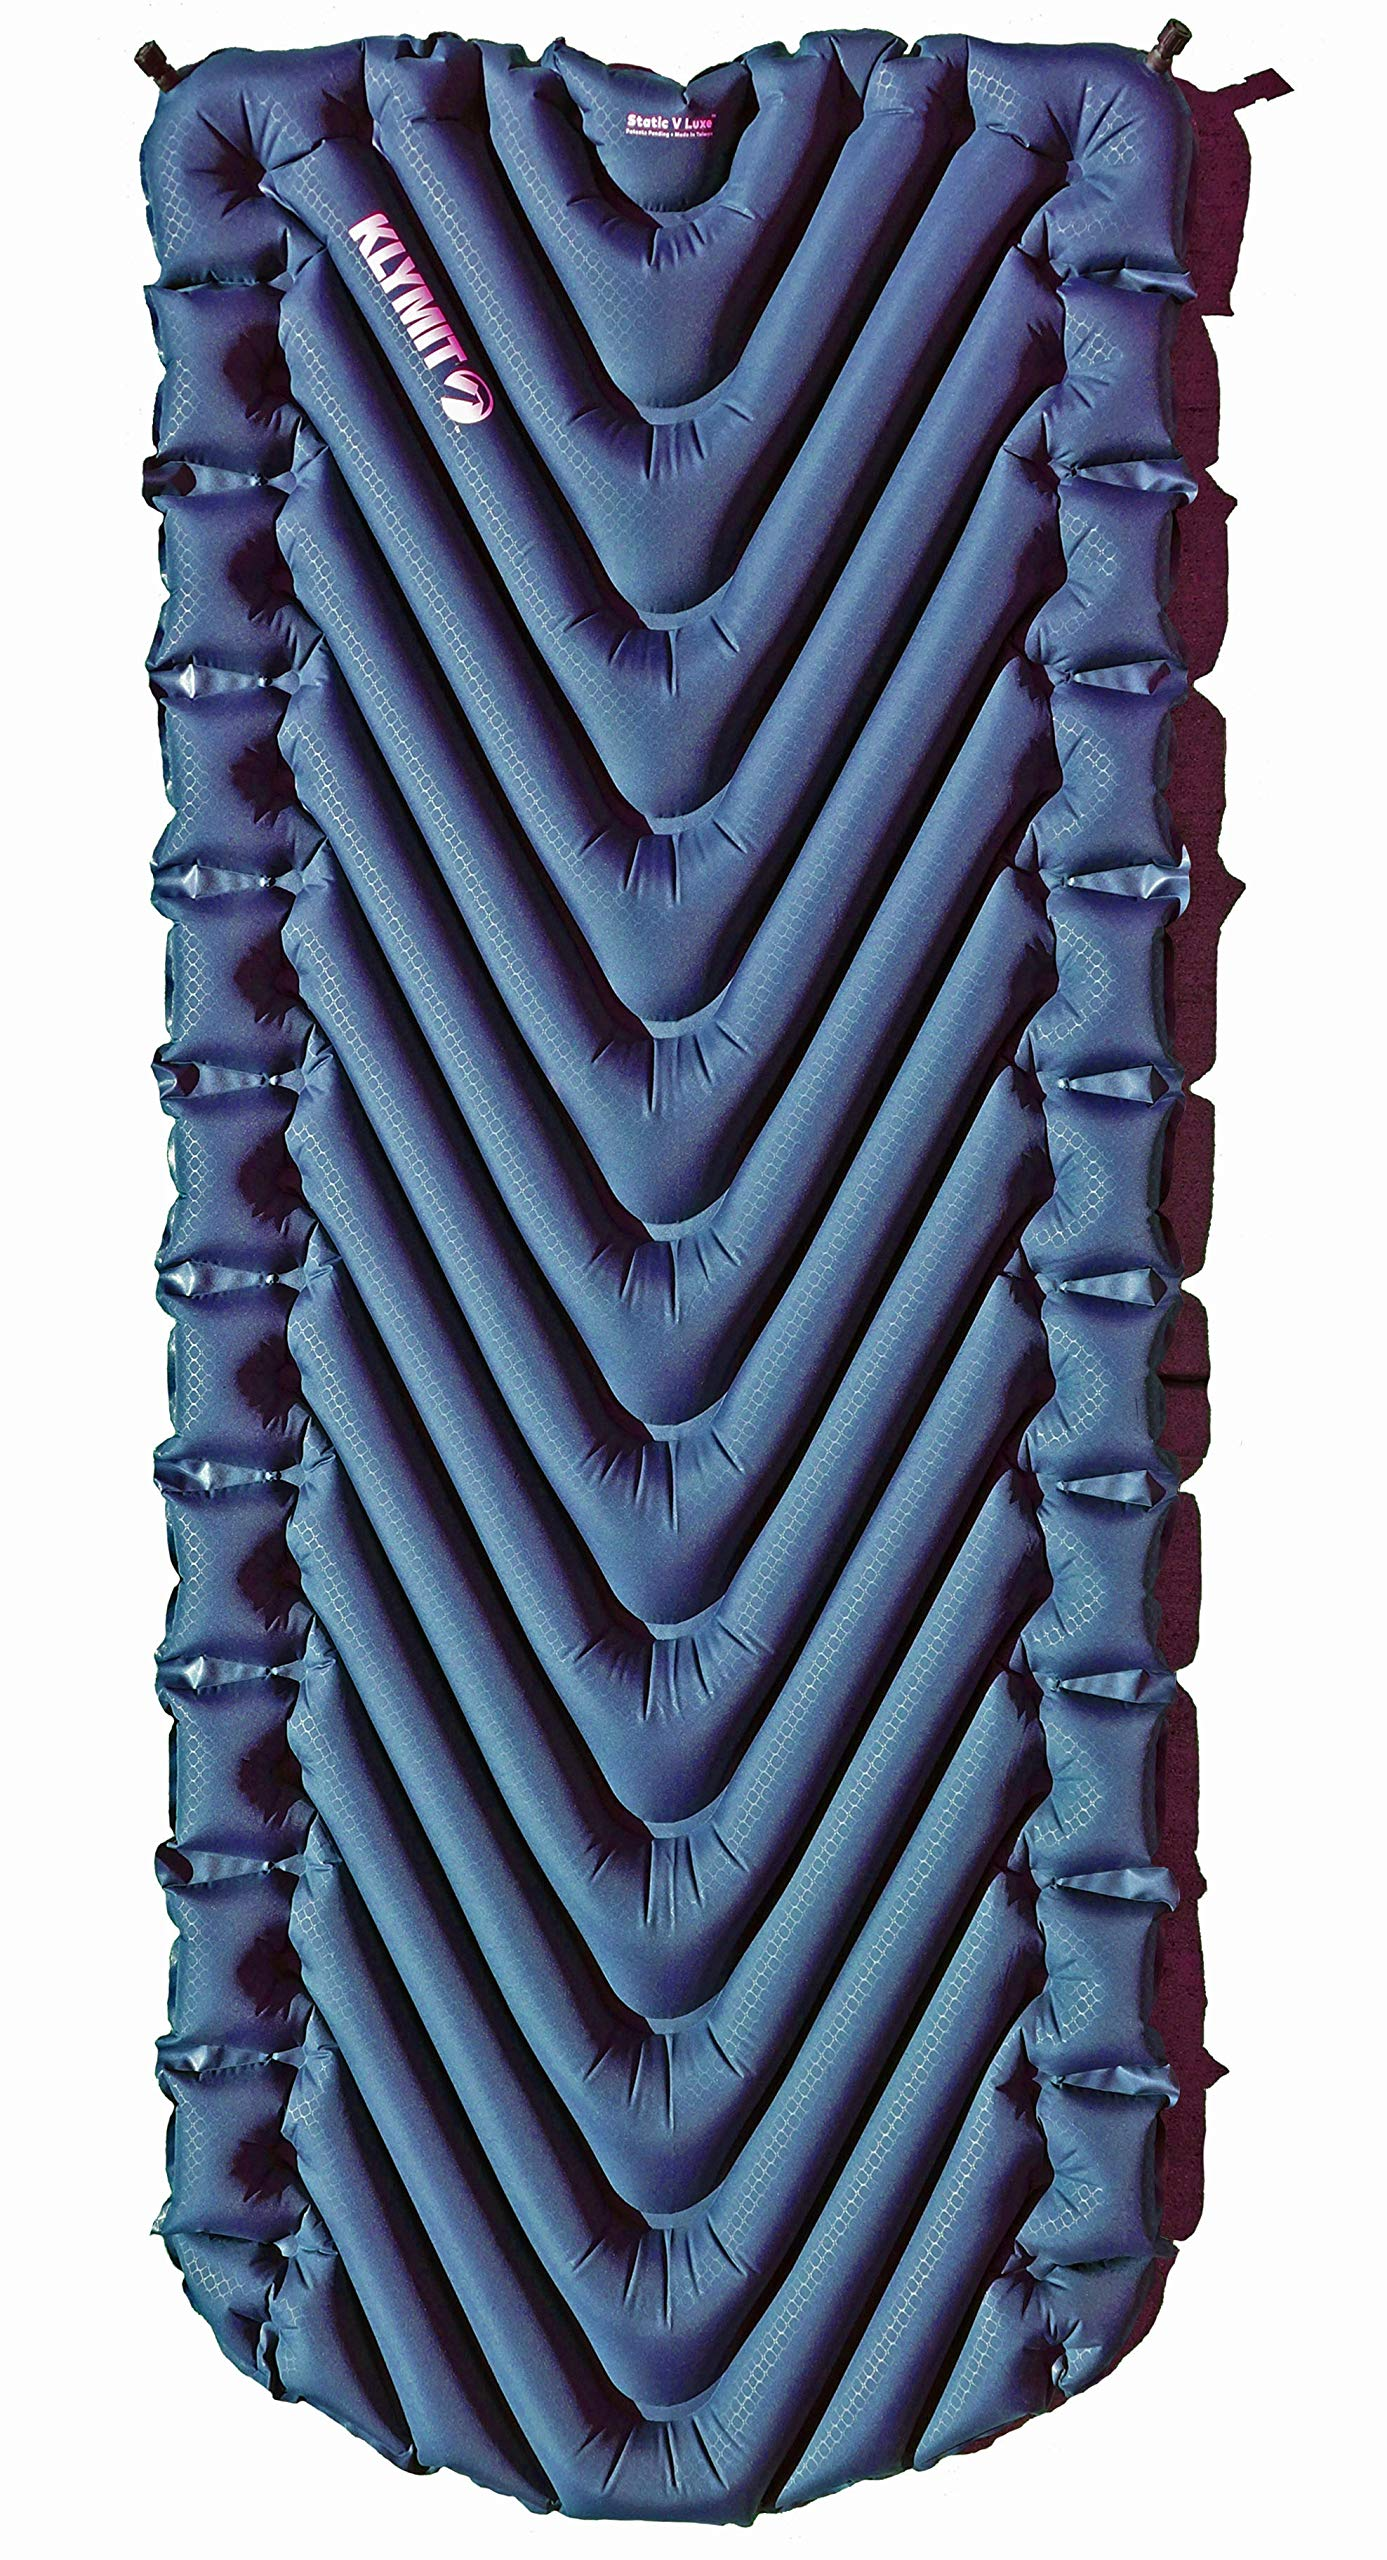 Klymit Static V Luxe Sleeping Pad for Camping, Hiking, and Backpacking (Includes Air Mattress, Stuff Sack, and Patch Kit) (Midnight Blue) by Klymit